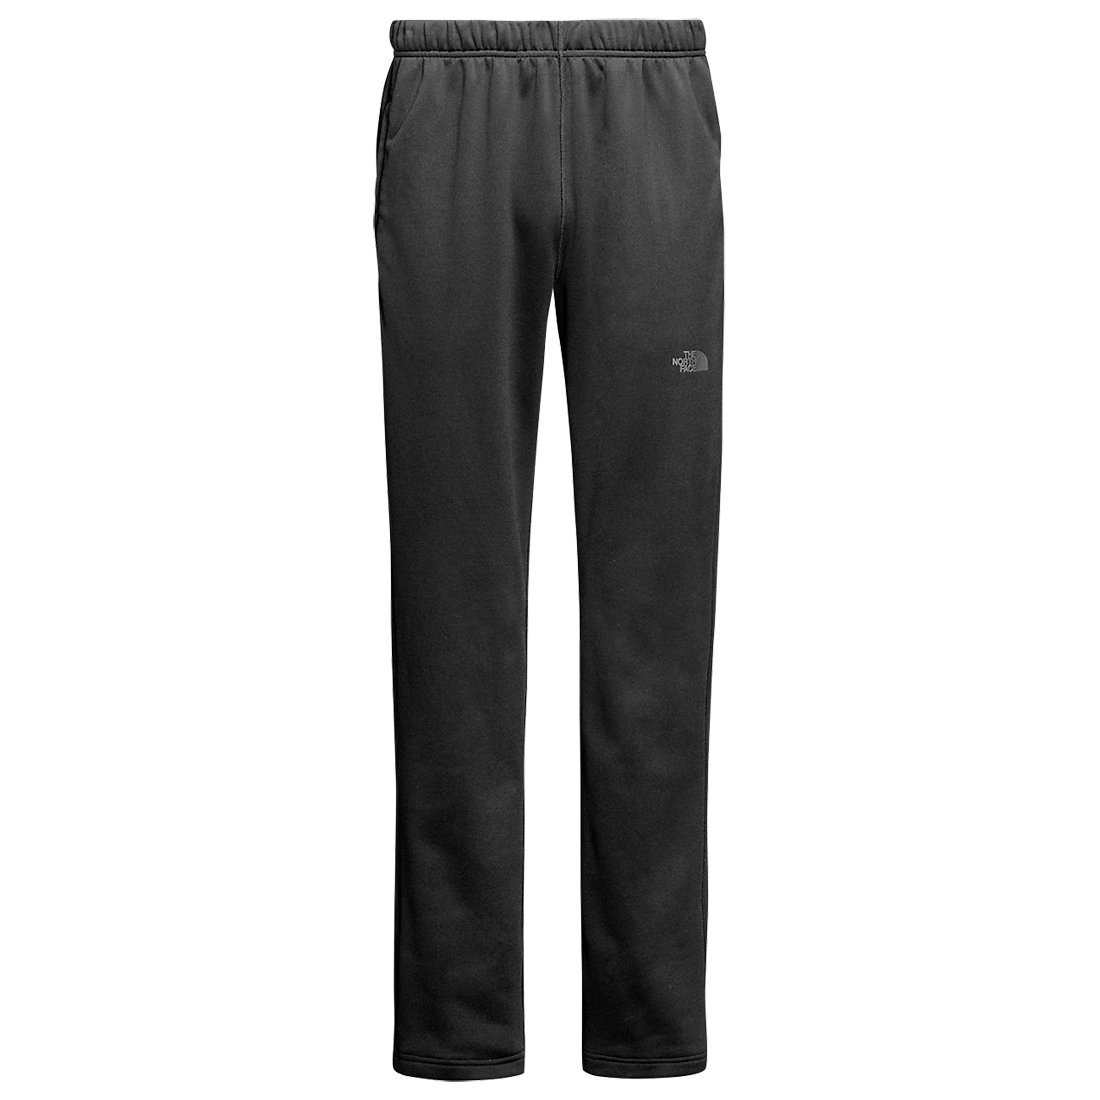 North Face Men's Surgent Pants Review